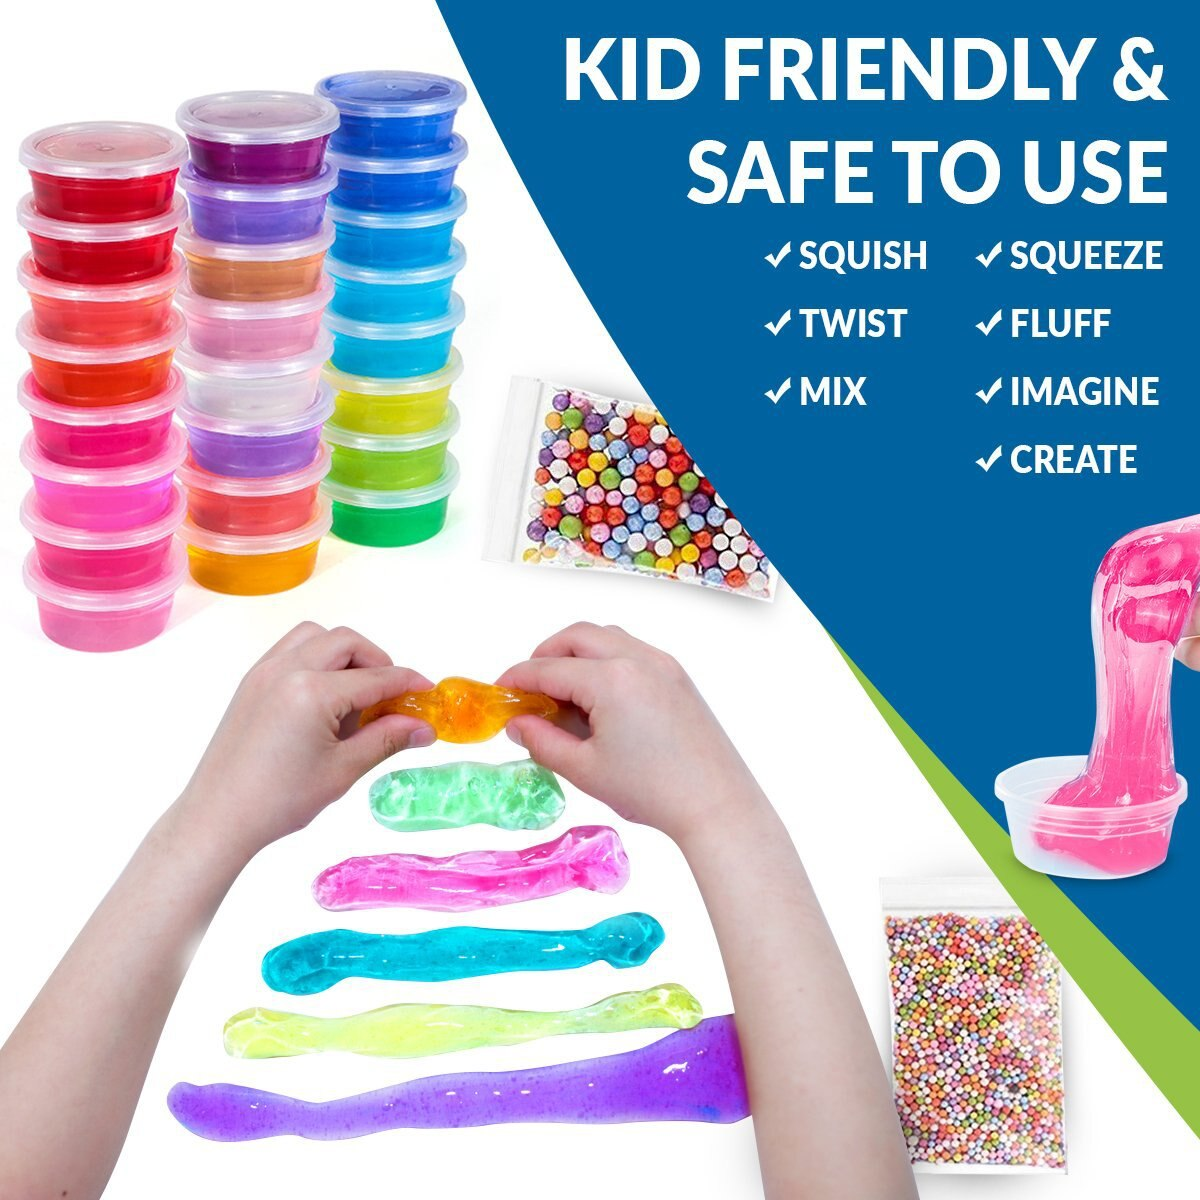 52Pack/Lot Fluffy Slime Kit 24 Color Slime Supplies Gifts for kids DIY Kit Sensory Play Stress Relief Toy Stretchy Soft for Kids